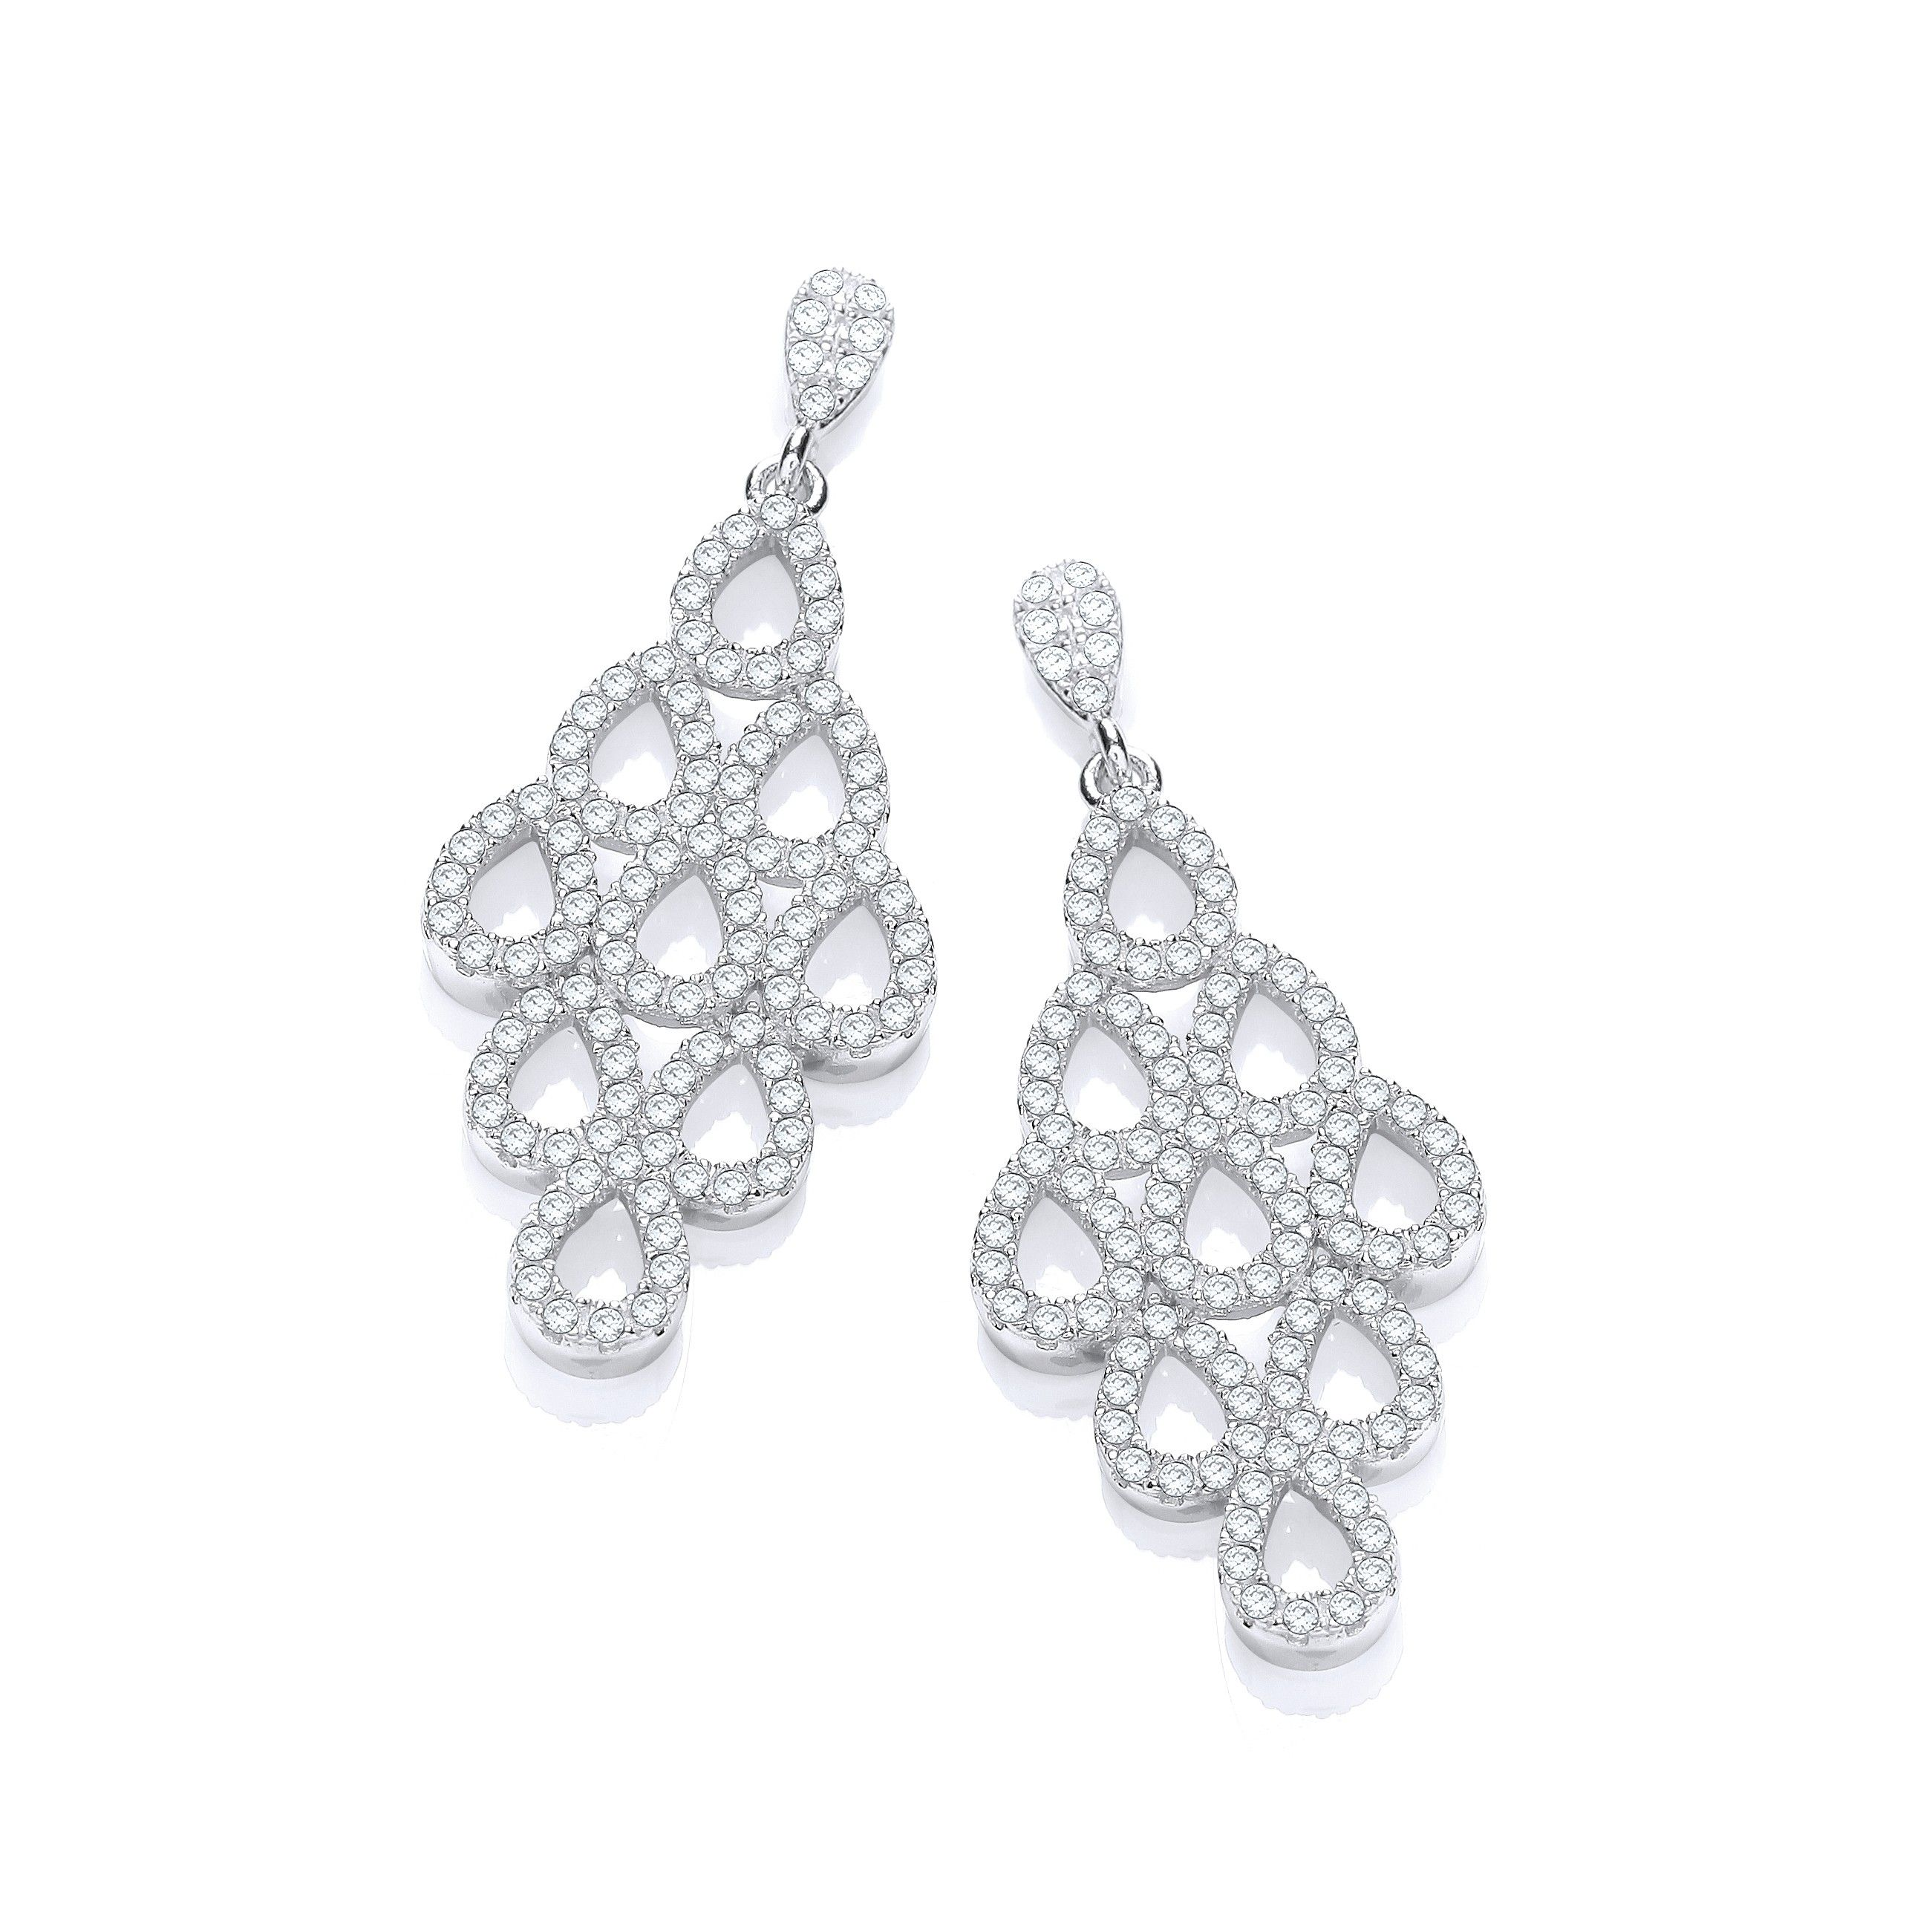 Drop Silver Earrings Set With CZs Cubic Zirconia Silver